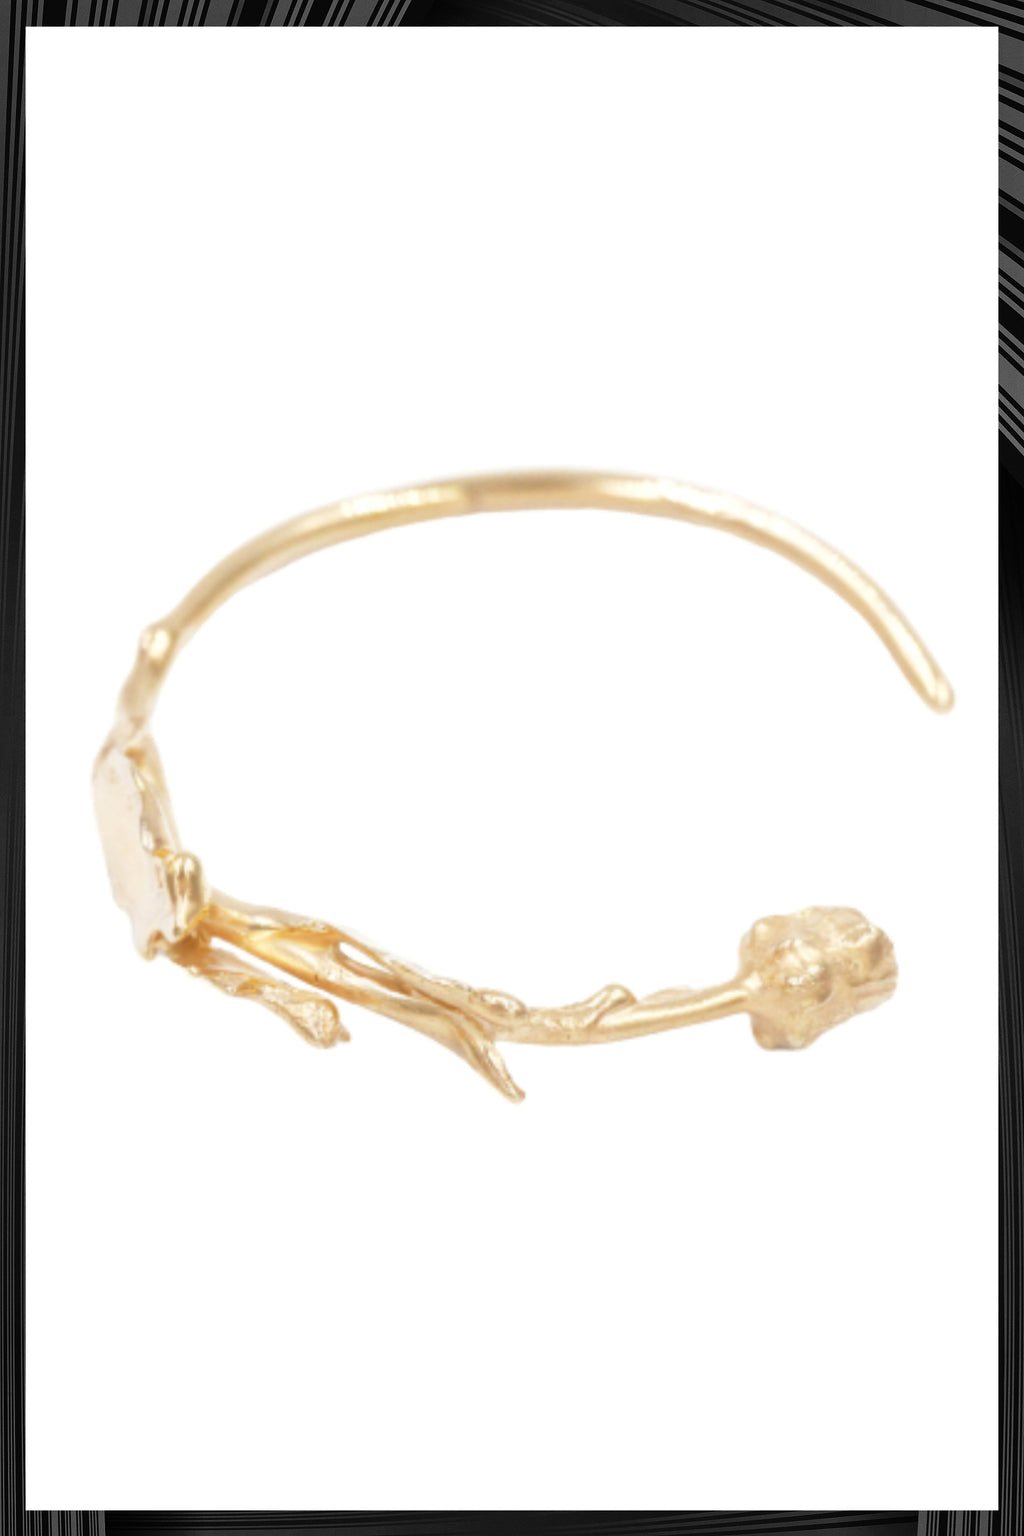 Gold Floreo Bracelet | Free Delivery - Quick Shipping